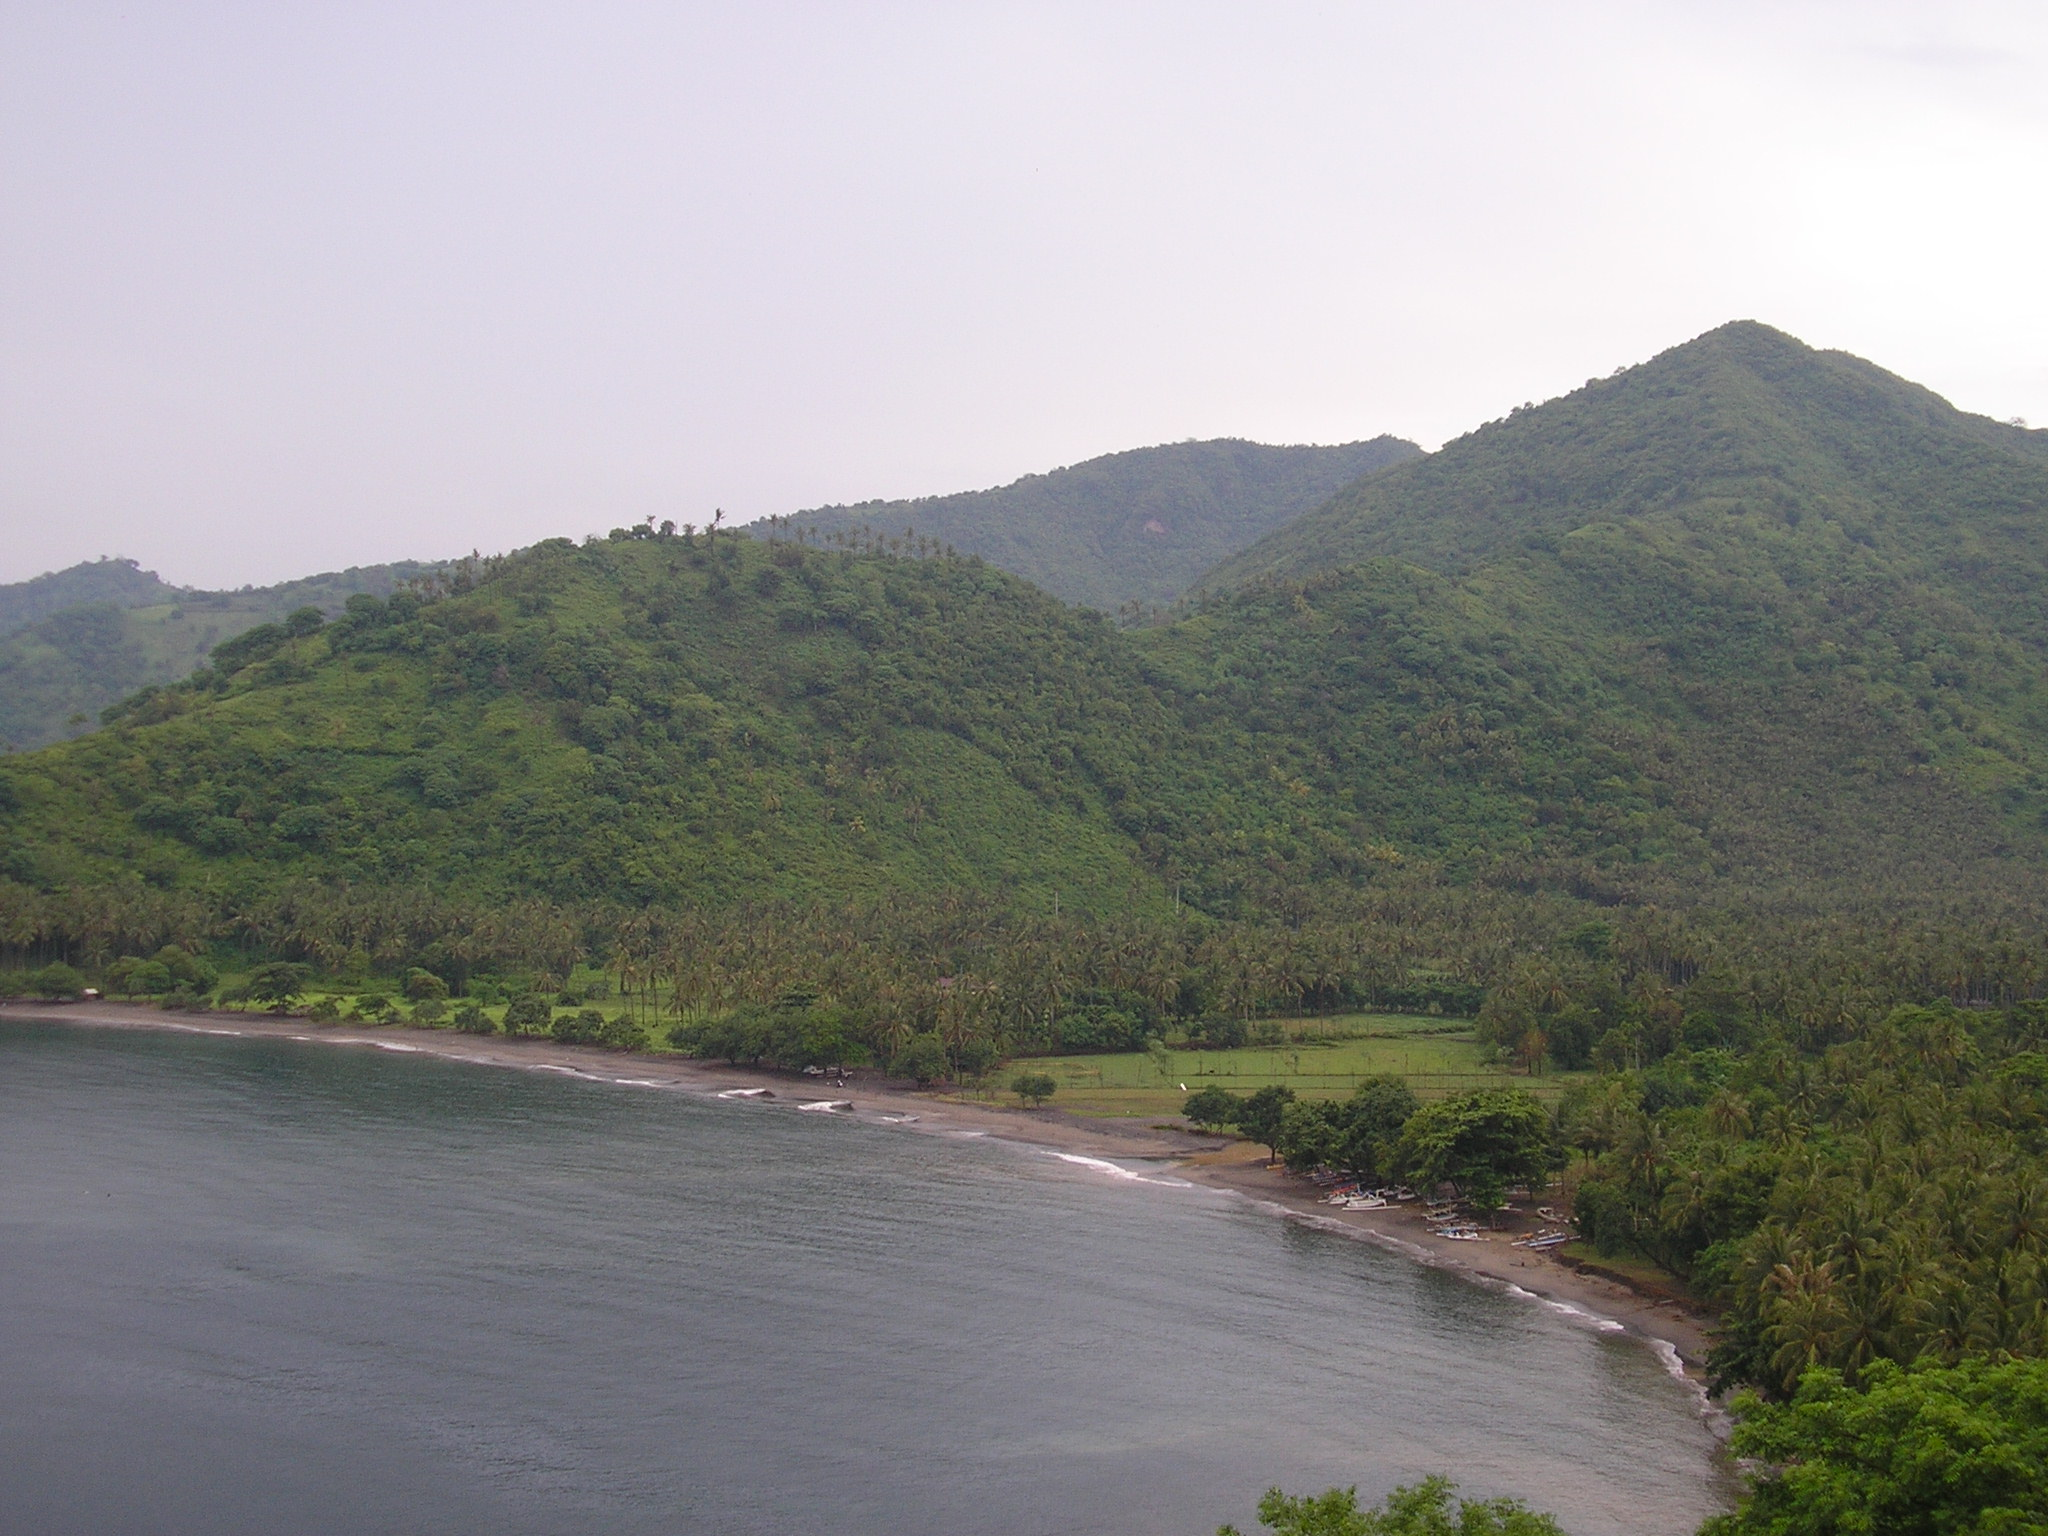 Filming in Indonesia - Lombok